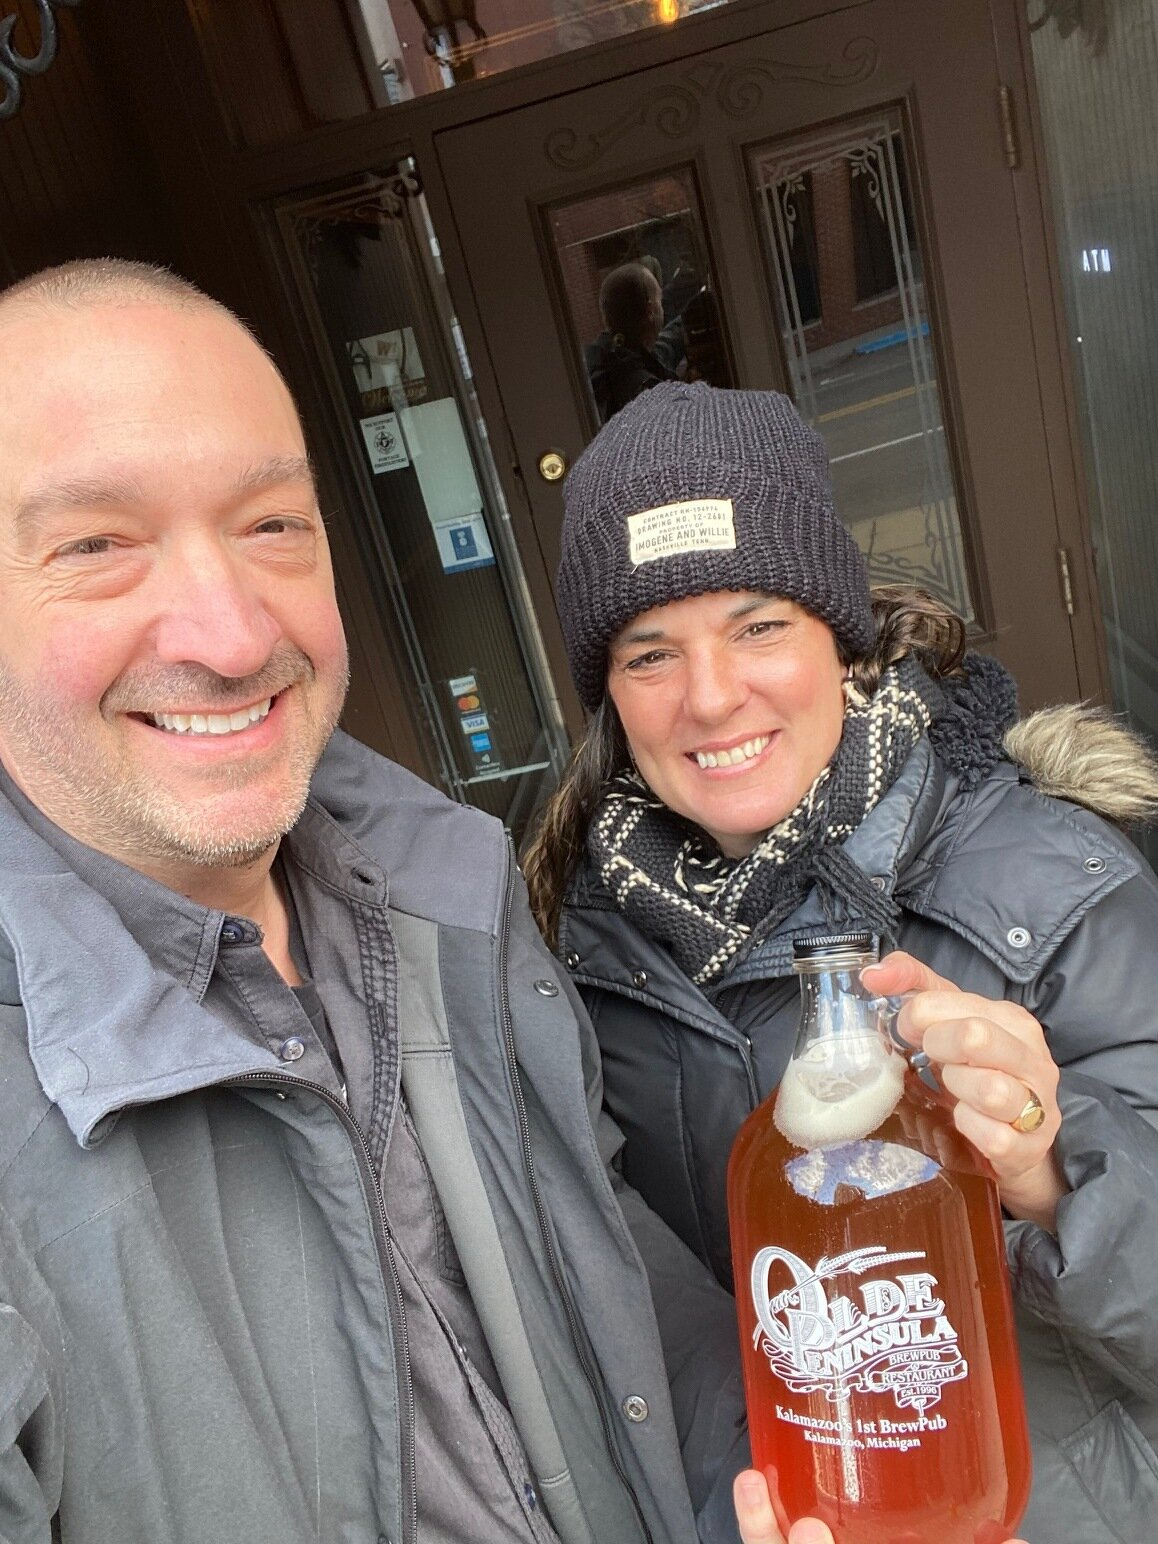 Take out growler from olde peninsula march 21st, 2020